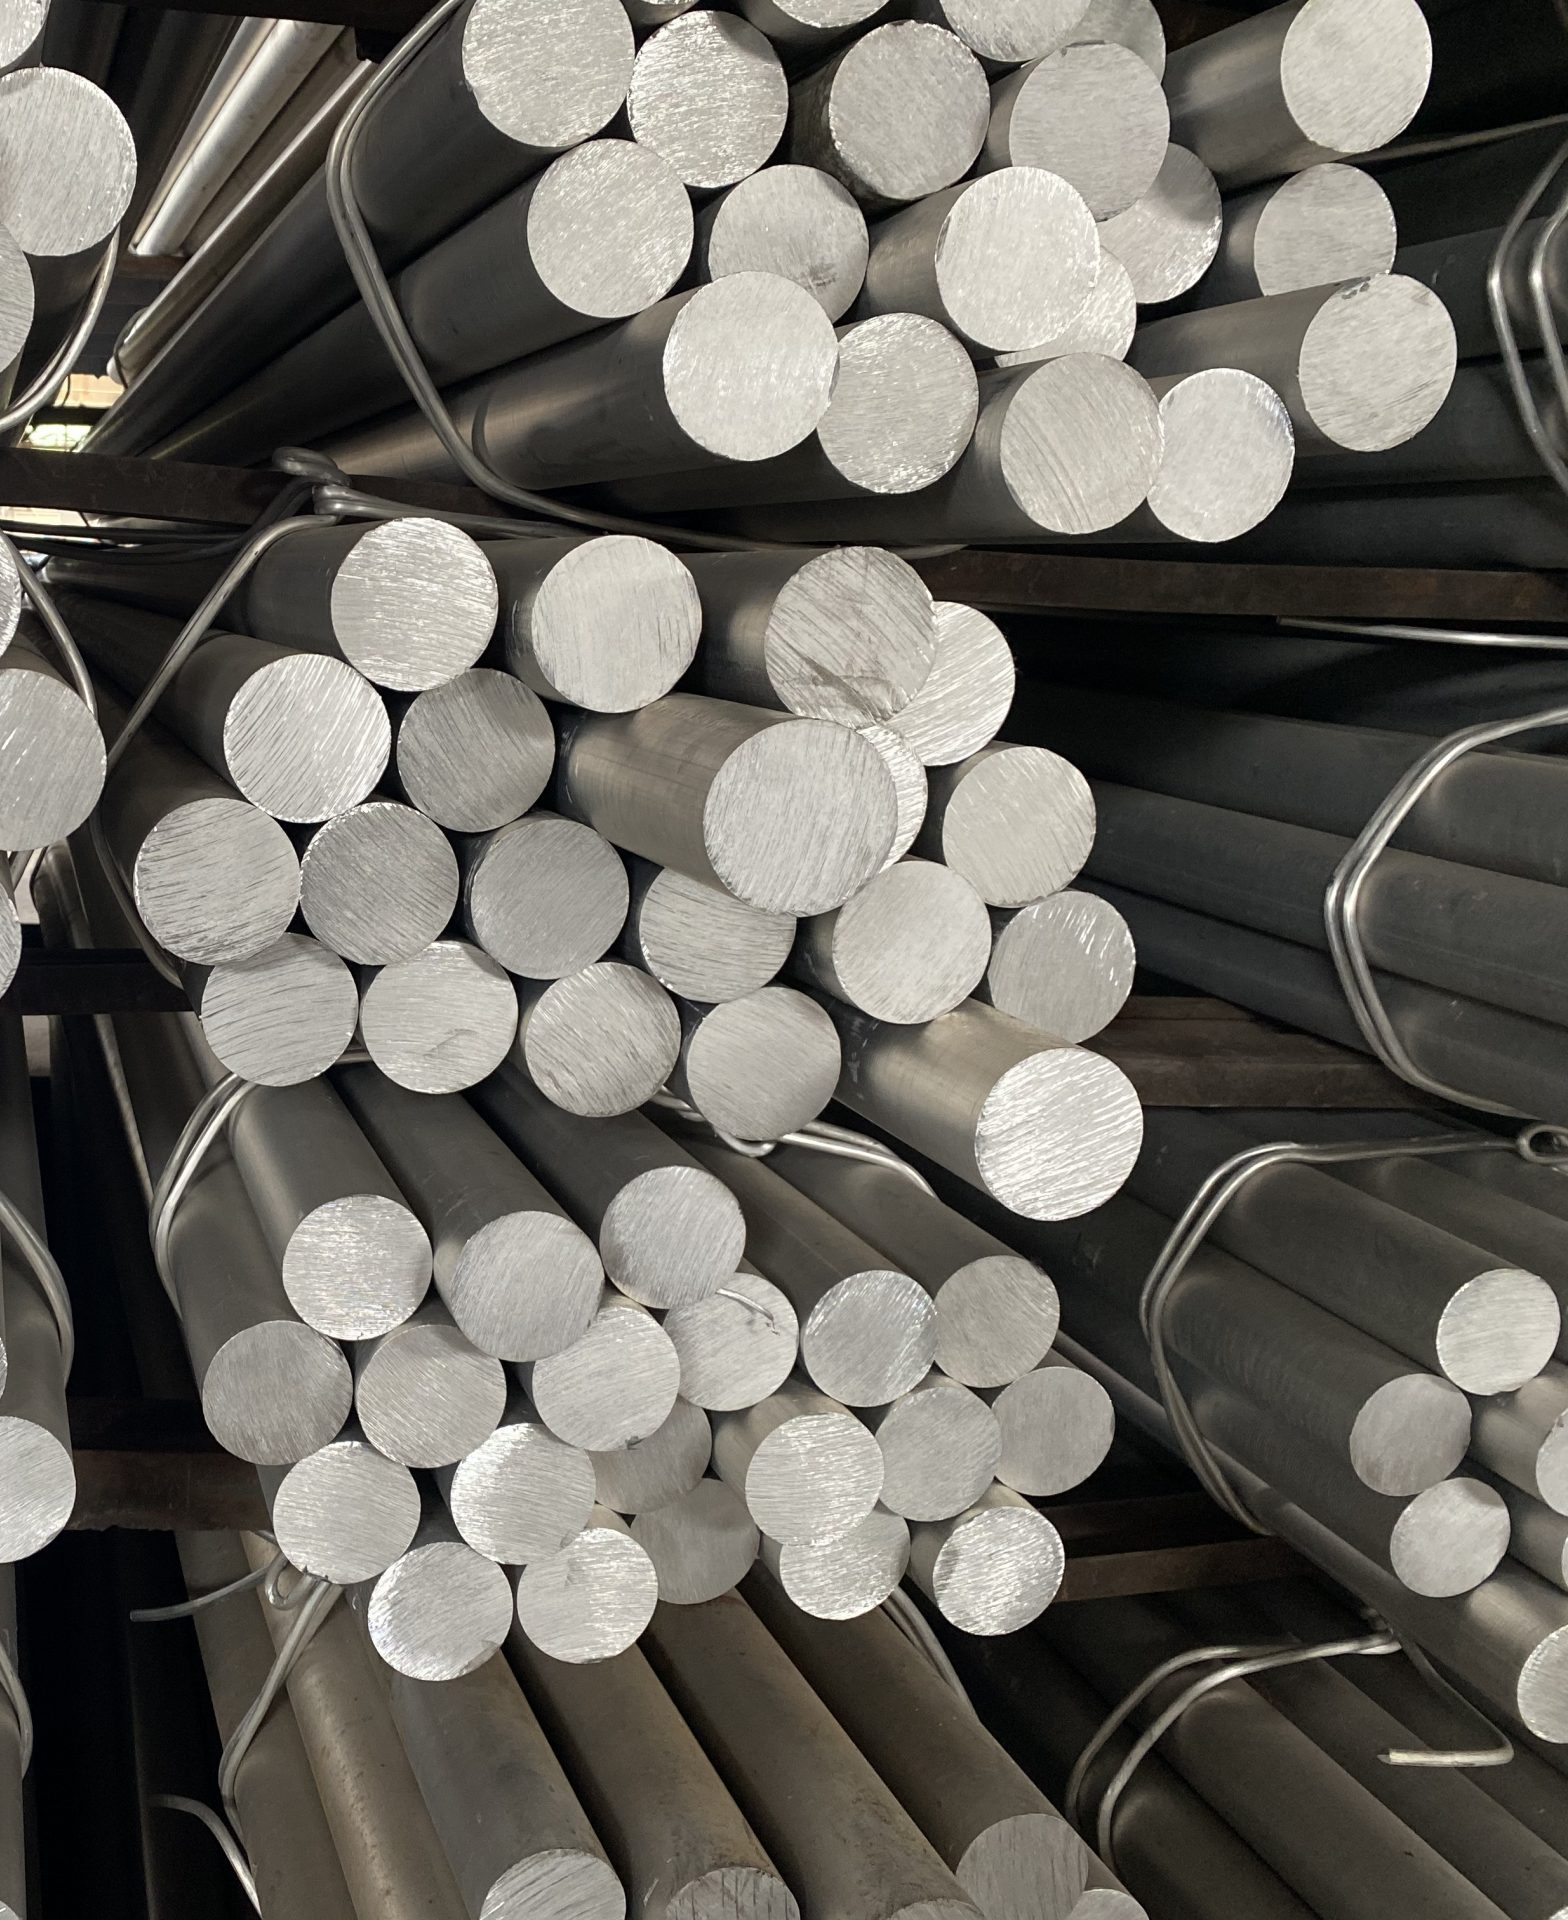 It is estimated that 4696 tons of aluminum bars and profiles will be imported from Kyrgyzstan in 2020